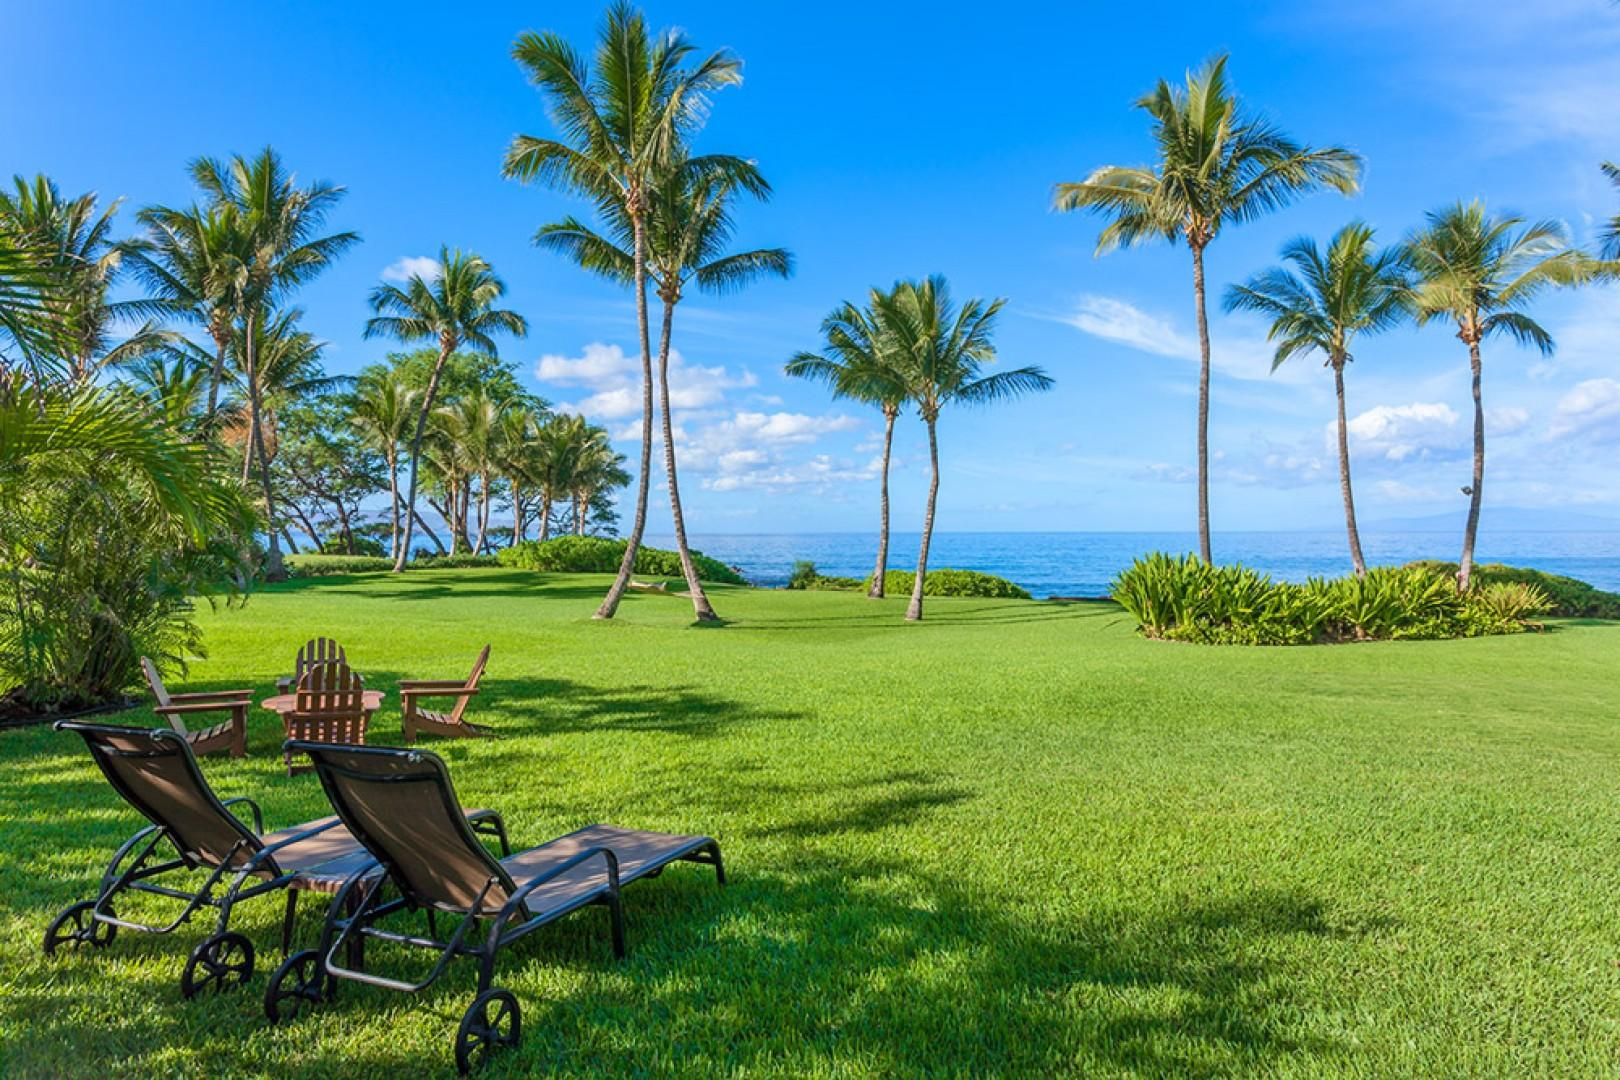 Wailea Sunset Bungalow - Sprawling Grass Yard Meets The Sea at Wailea Sunset Bungalow. A grey sand pebbly beach fronts the property. At the ocean's edge is a campfire pit. Enjoy Stargazing and Roasting Marshmallows at the Sea!